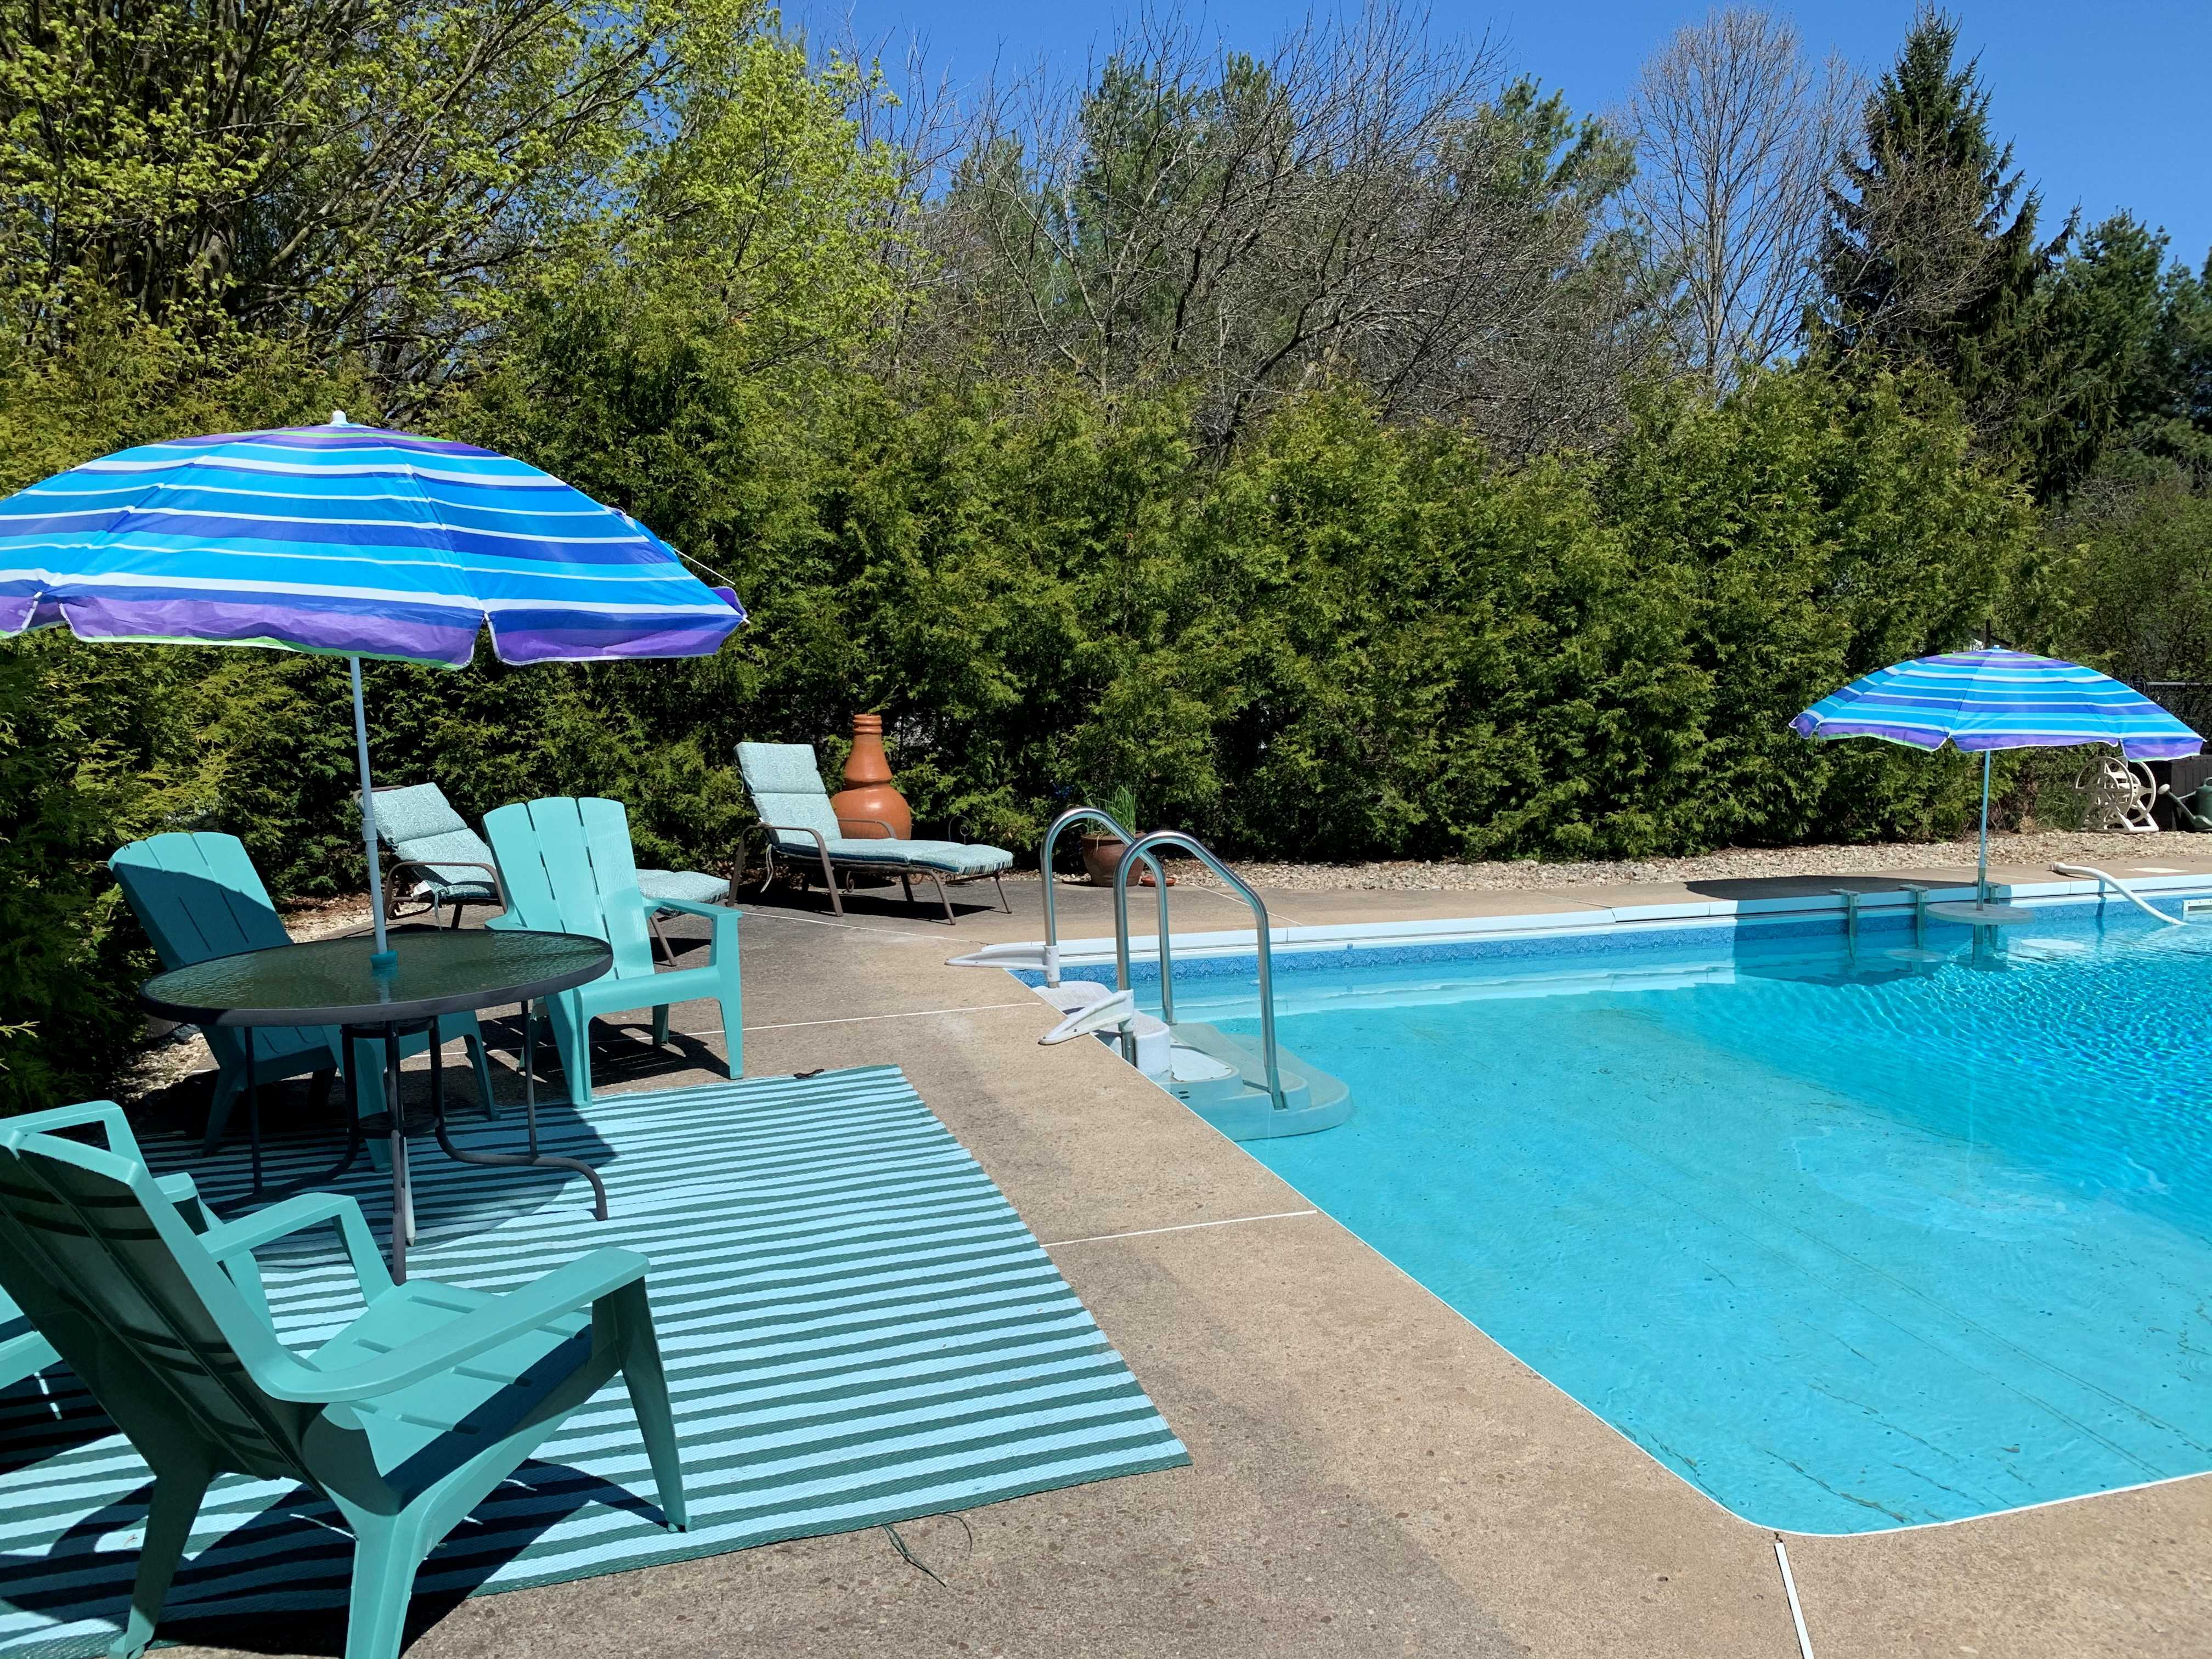 http://listingtour.s3-website-us-east-1.amazonaws.com/1375-adjala-tecumseth-townline/new pool shot.jpg